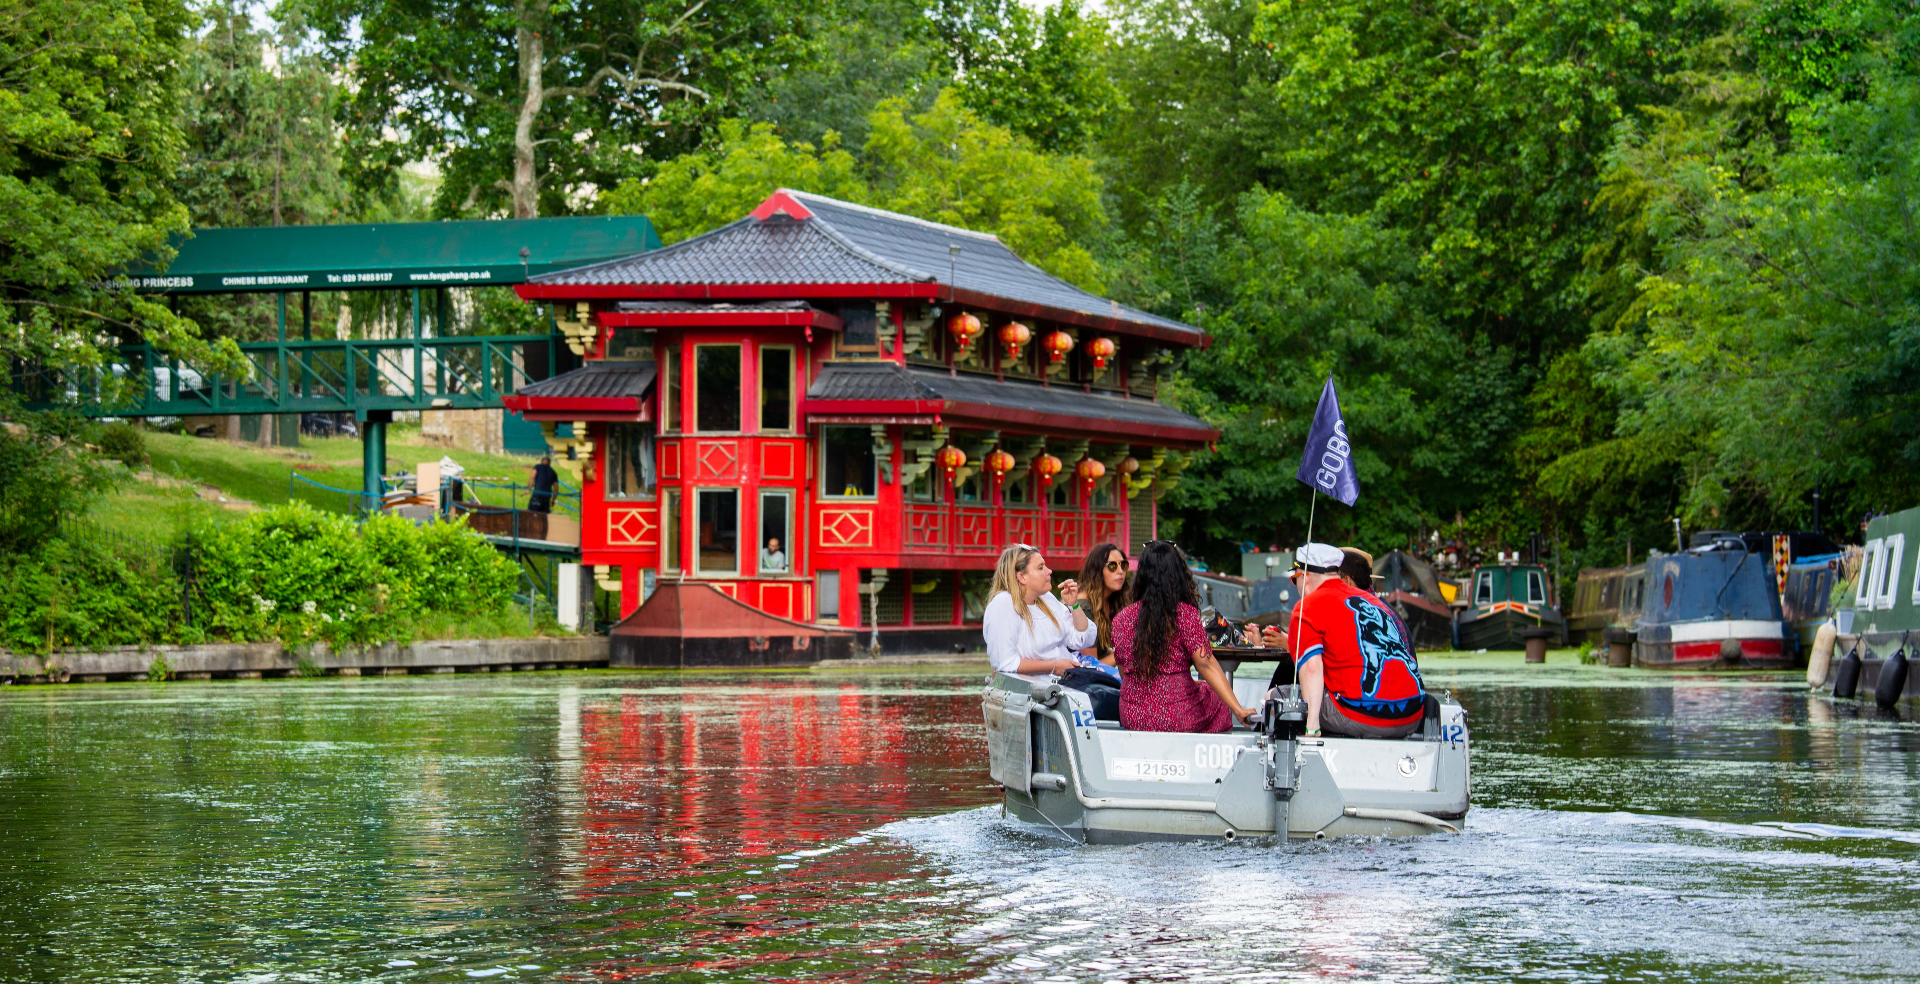 GoBoat London - Self-drive Boating Experience